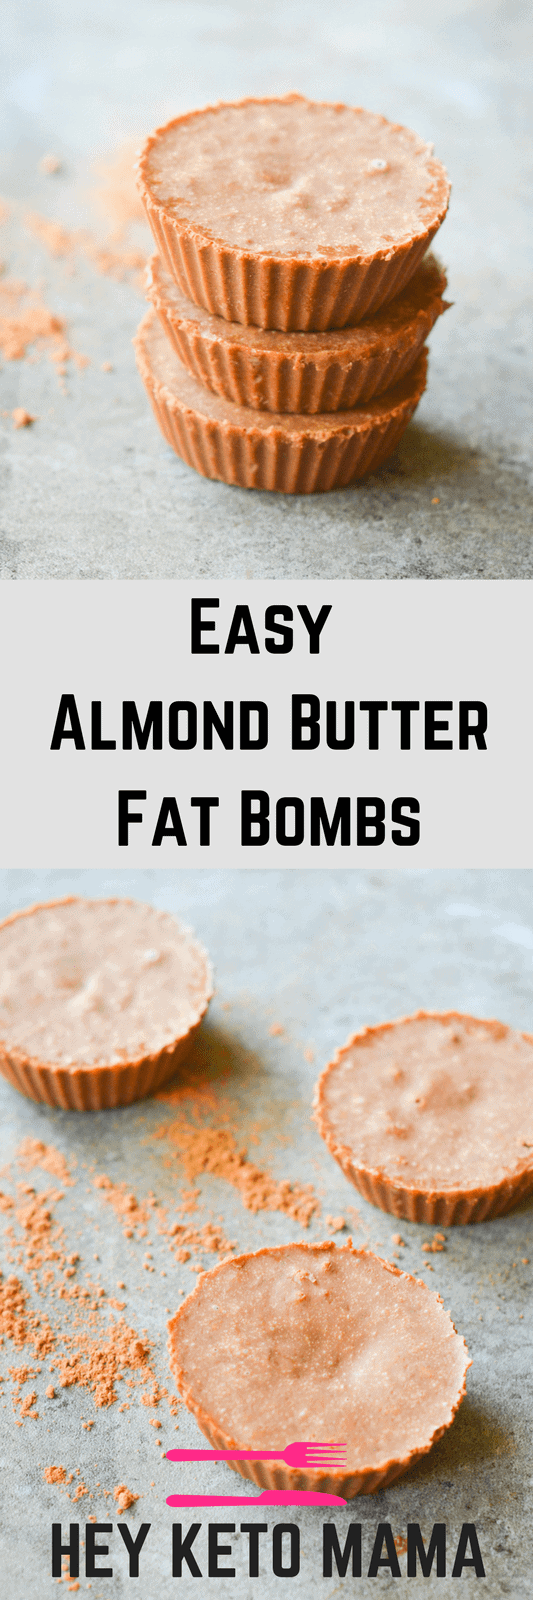 These Almond Butter Fat Bombs are very easy to make AND they're lick-the-bowl-delicious! With only 4 ingredients and less than 2 net carbs, you HAVE to try them the next time you need a sweet fix. | heyketomama.com